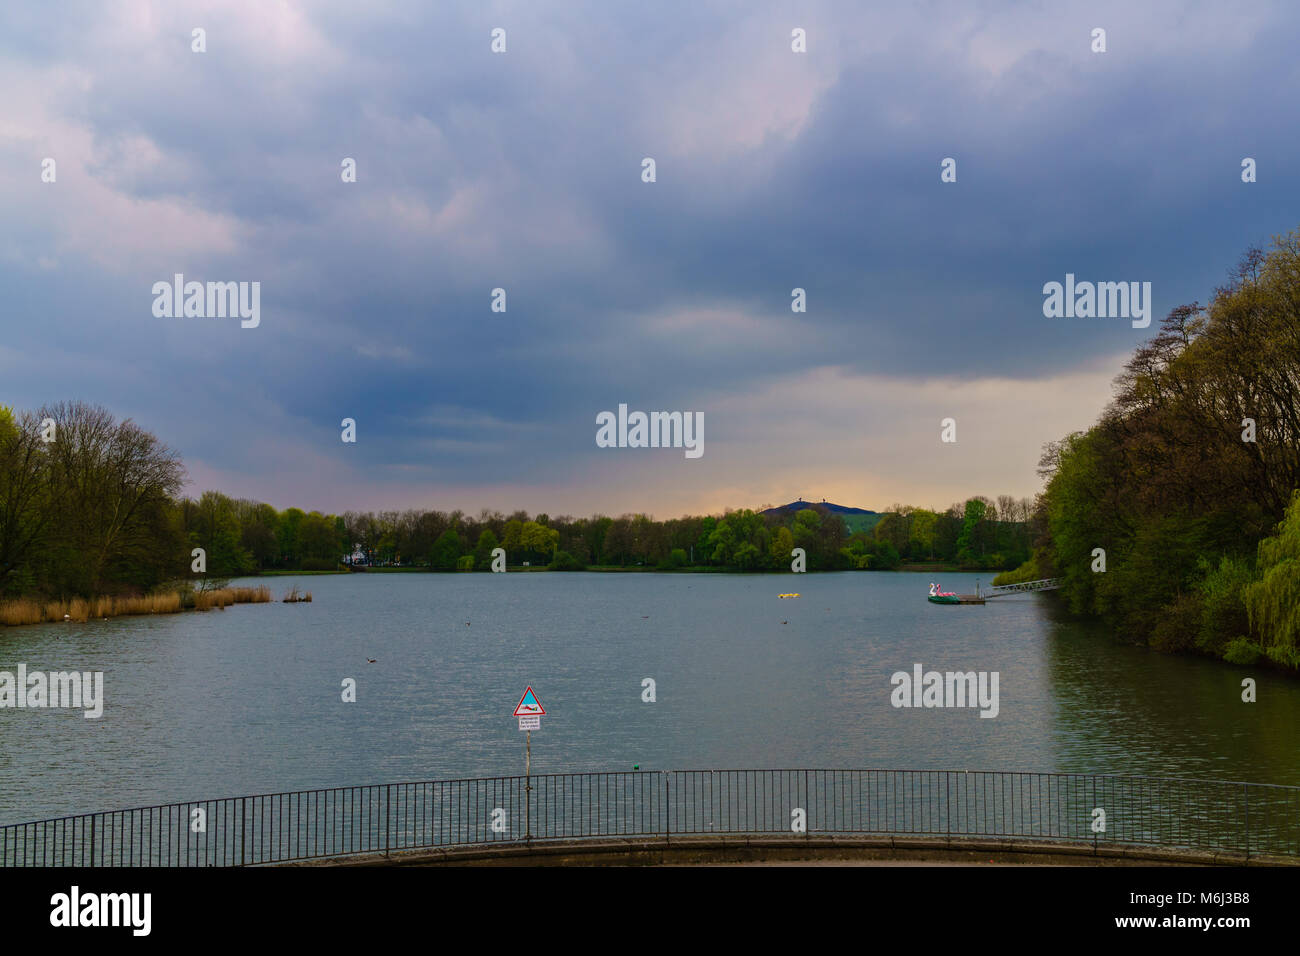 berger see in Gelsenkirchen at sunset - Stock Image